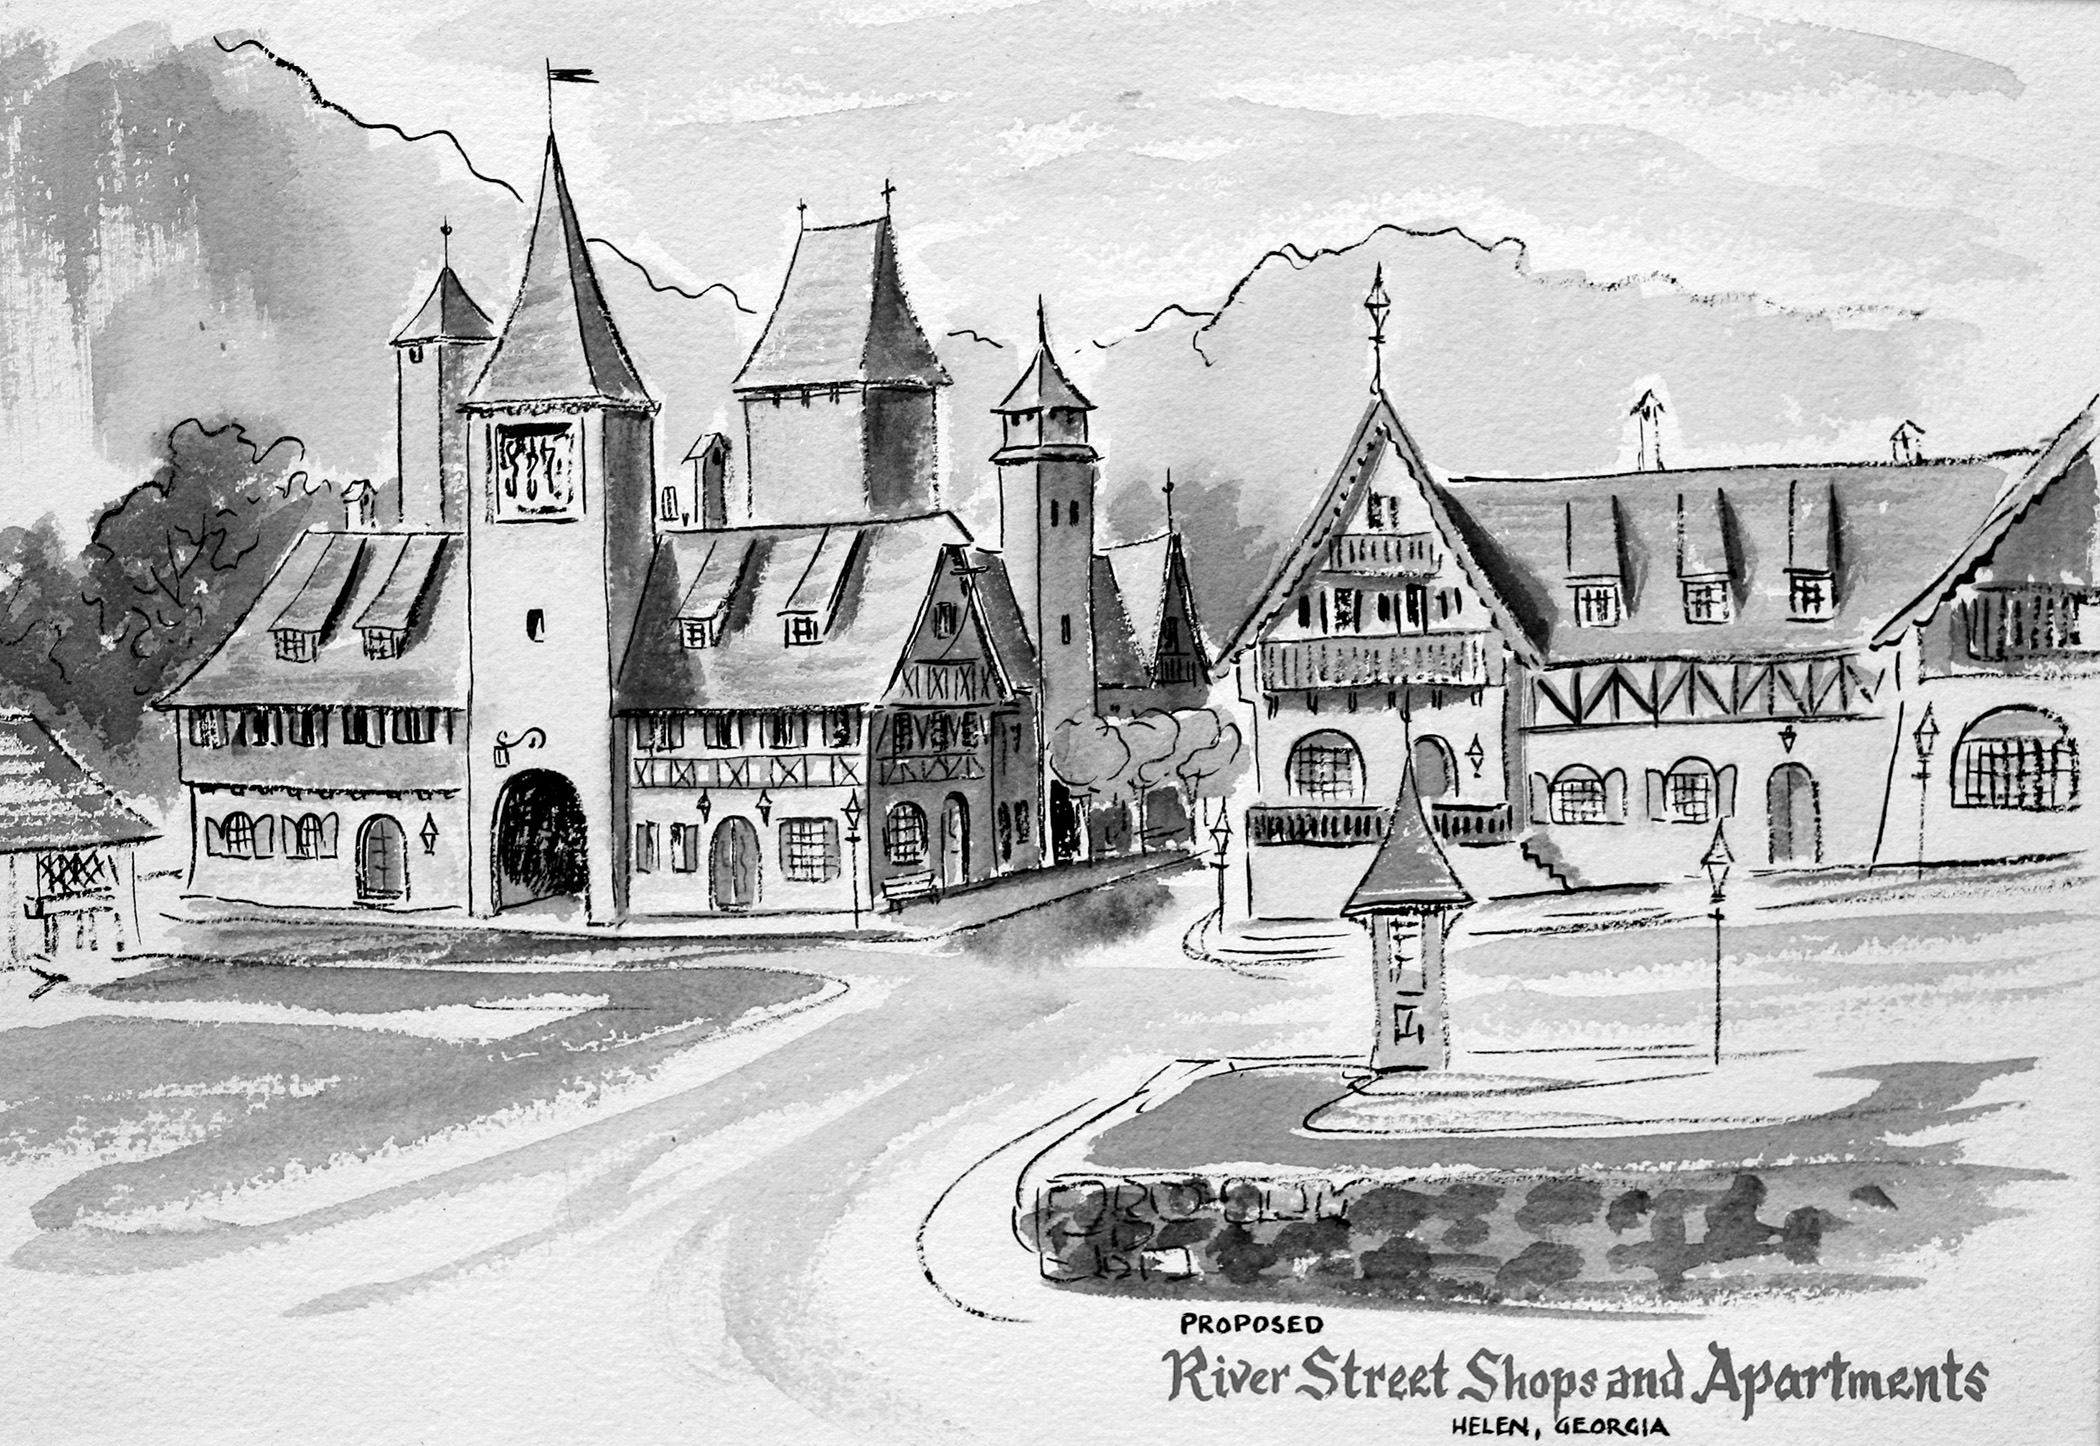 A sketch by the late artist John Kollock showing an idea for River Street shops and apartments.